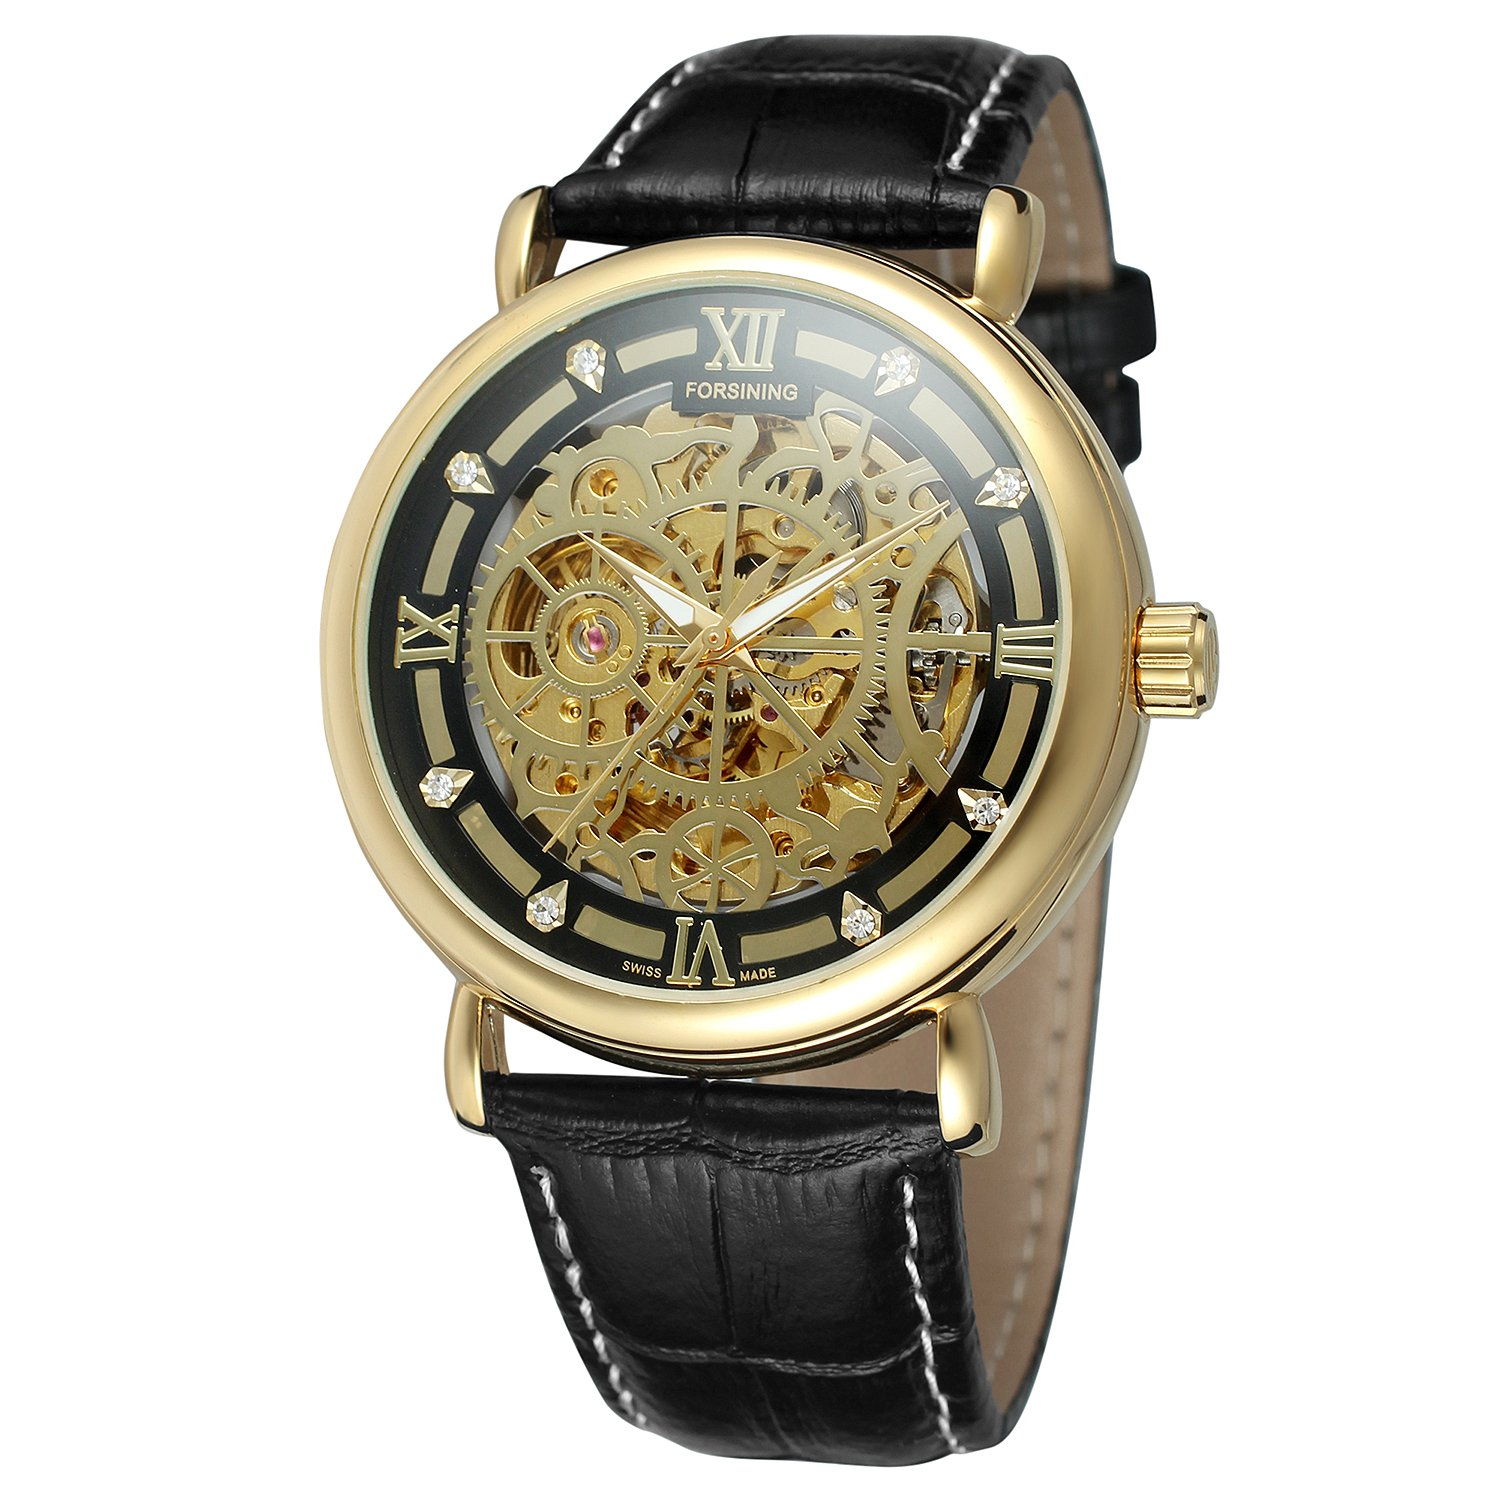 Amazon.com: FORSINING Mens Brand Watches Sports Fashion Skeleton Automatic Mechanical Watch Relogio Masculino Saat: Watches